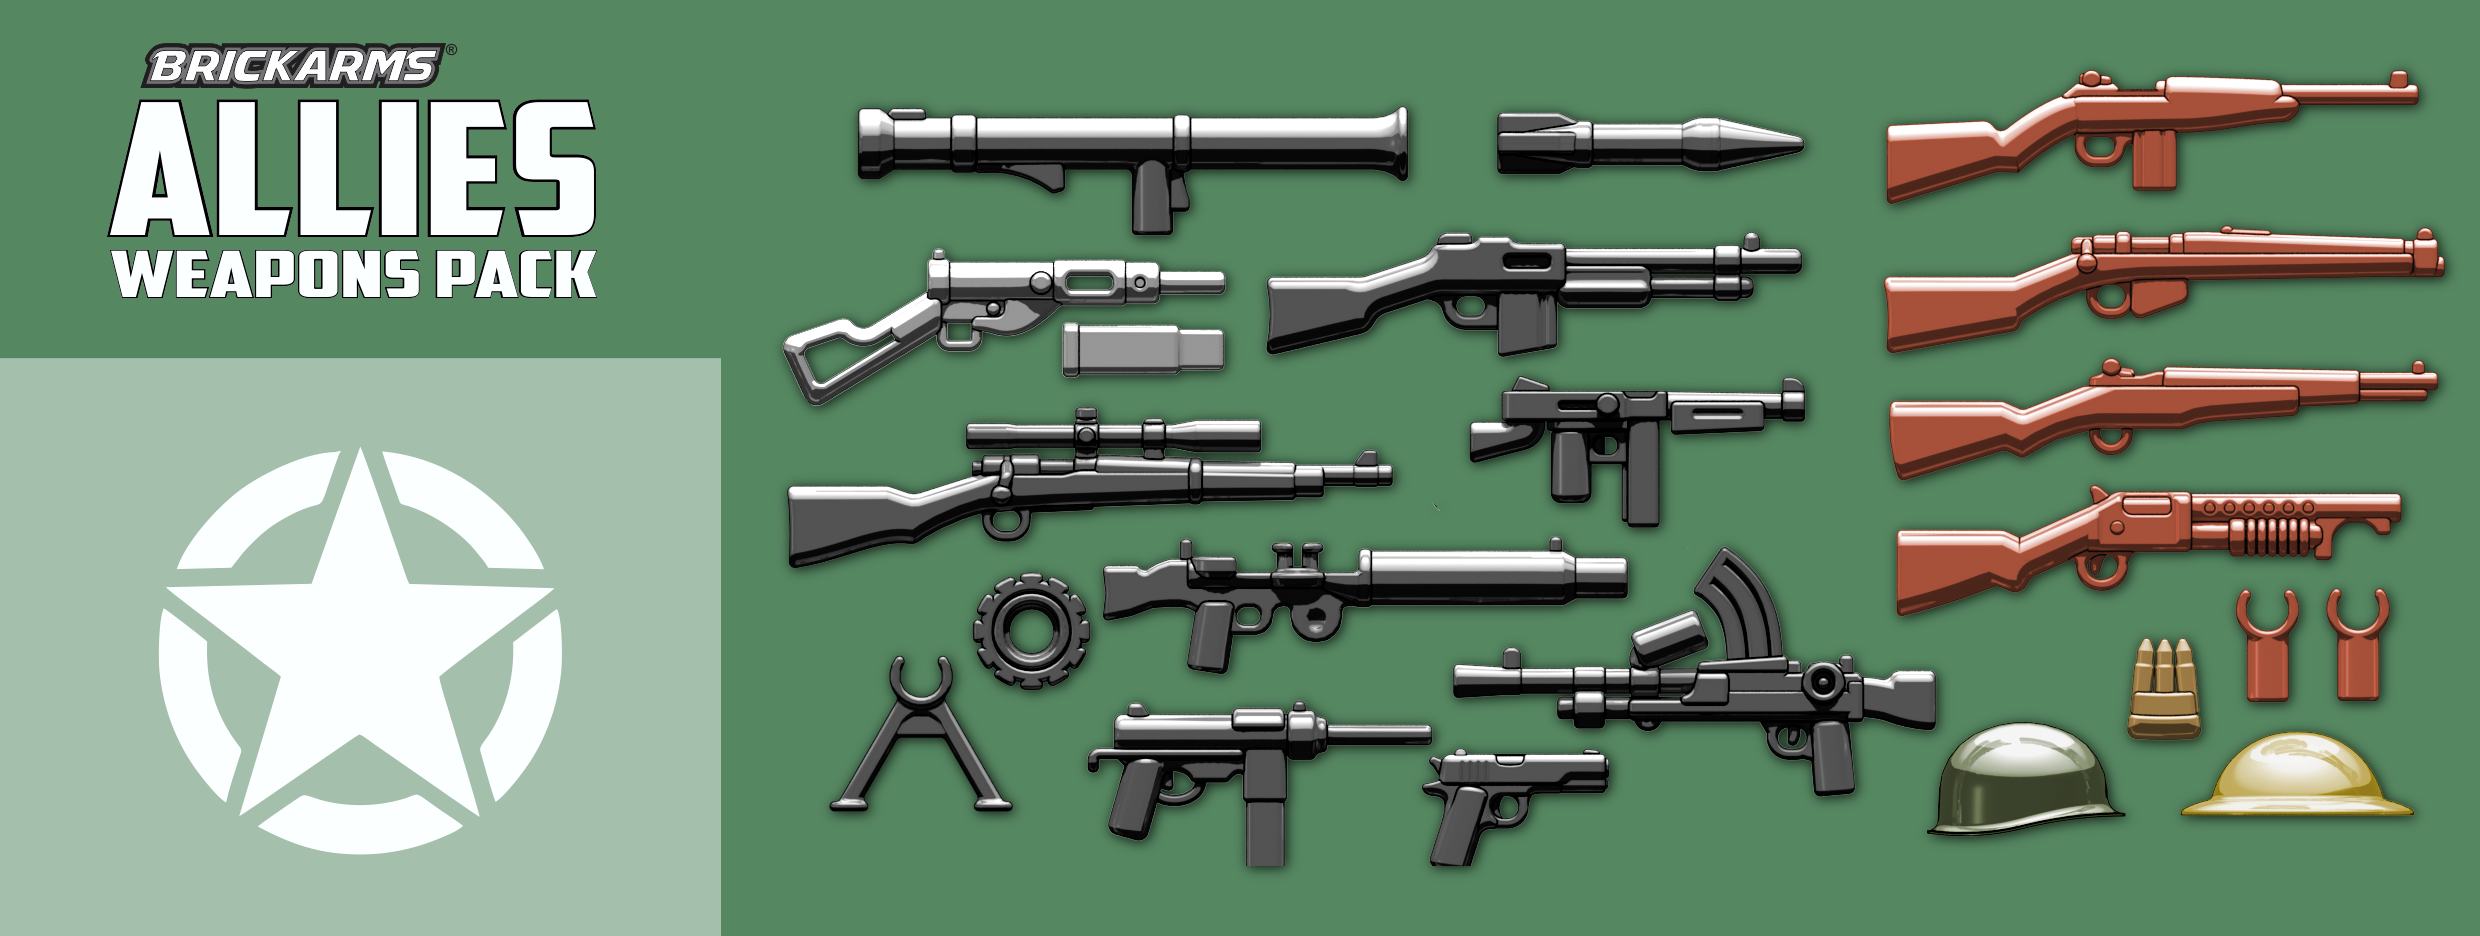 allies-weapons-pack-2015-long.png